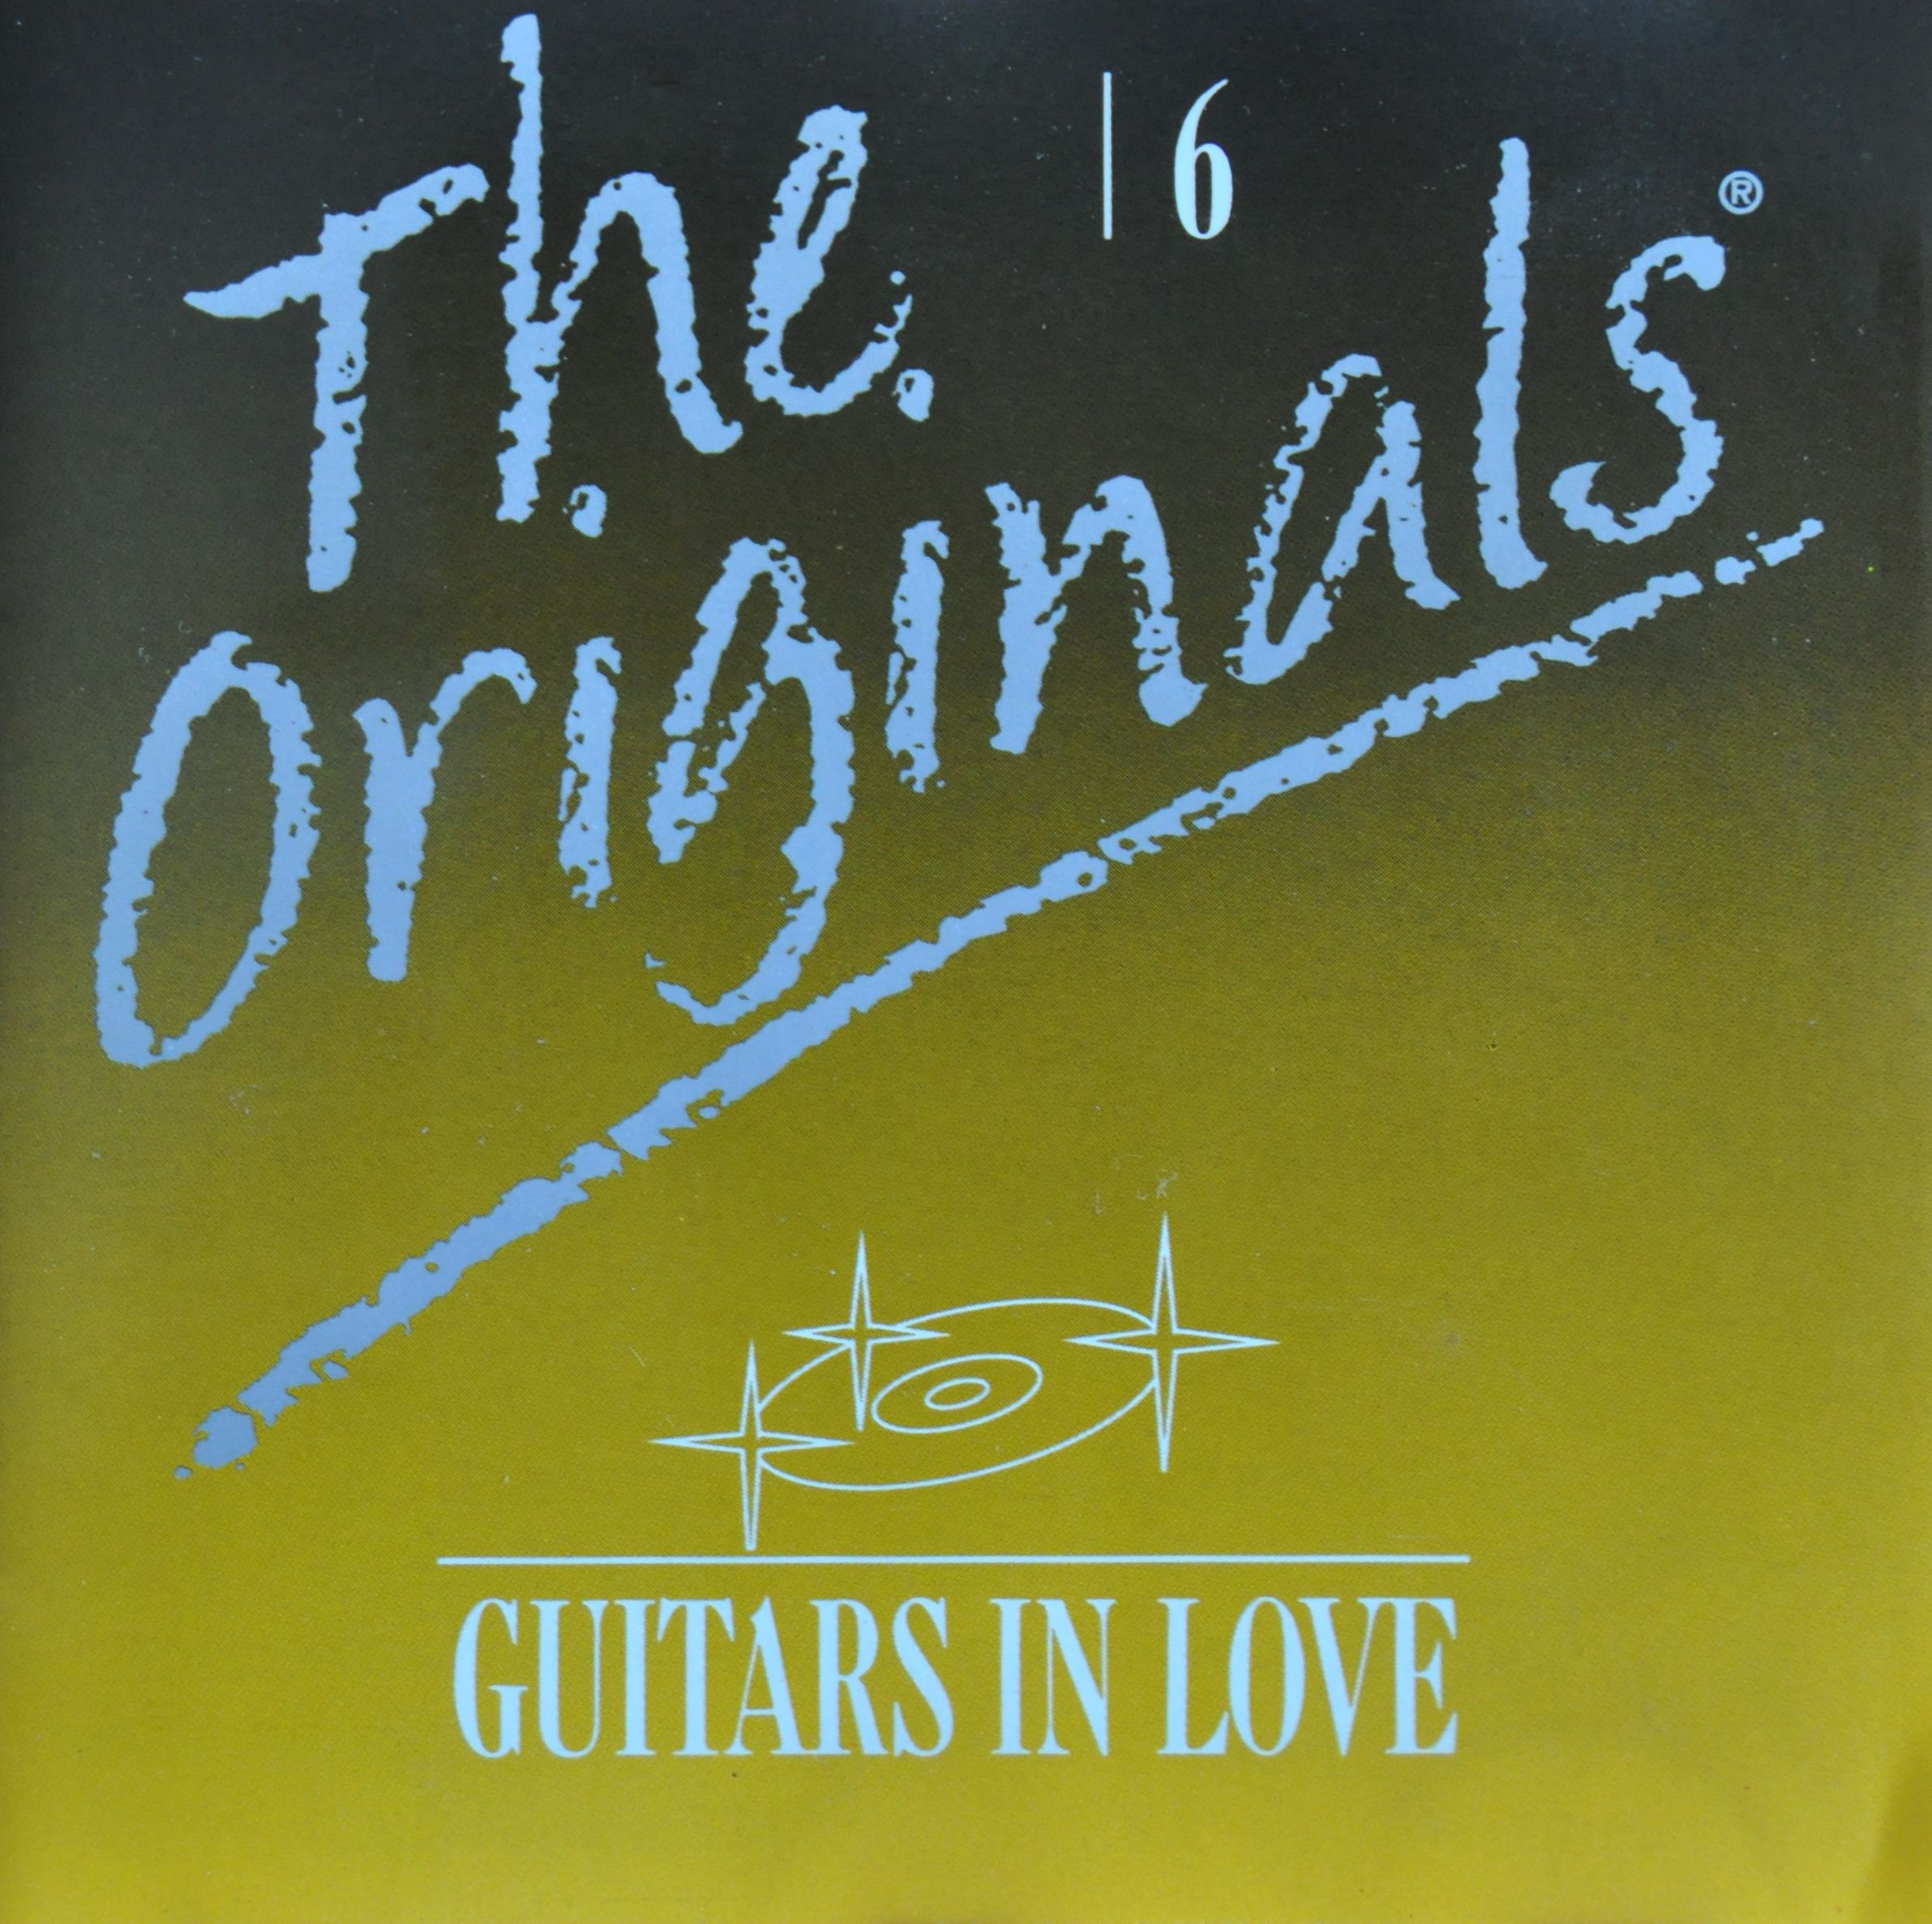 jaquettes2/The-Originals_06_Guitars-in-Love.jpg